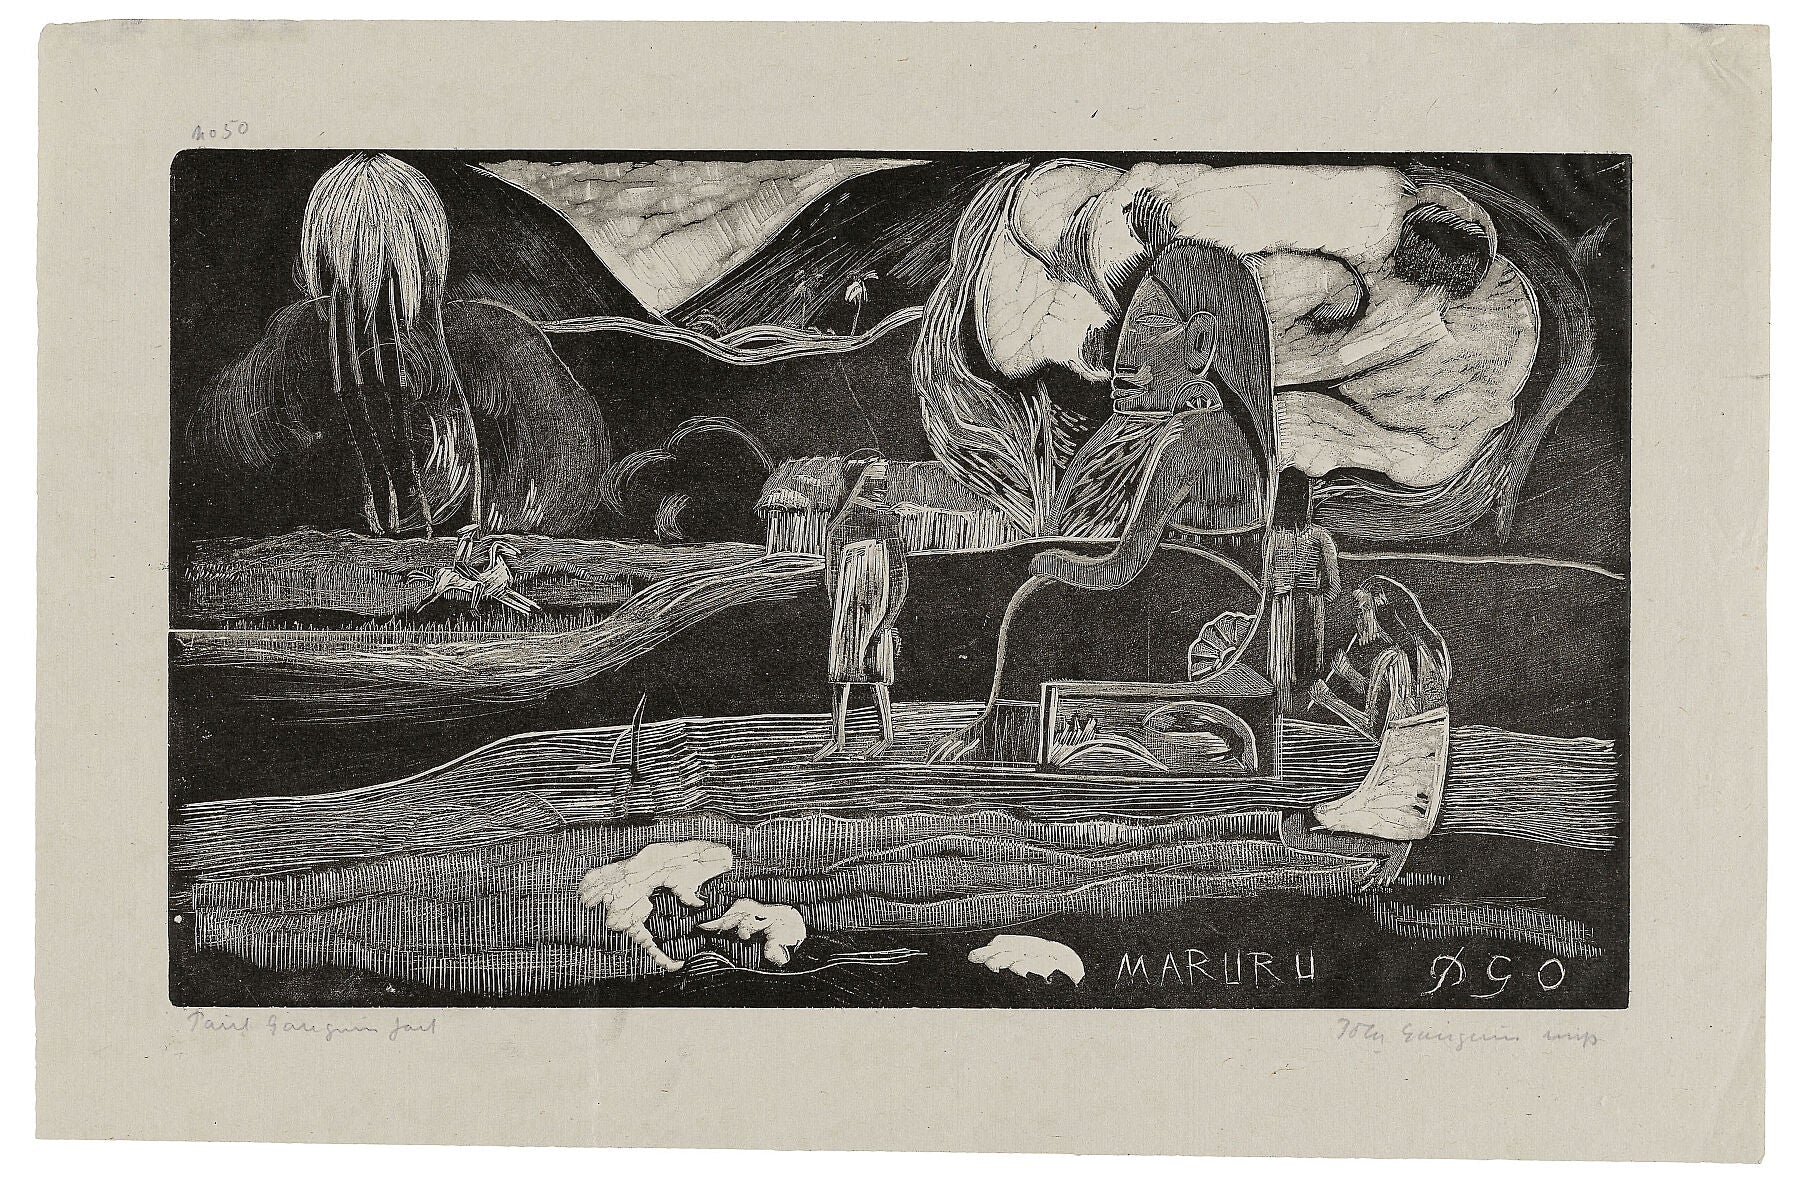 Maruru (Offerings of Gratitude), from the Noa Noa Suite - 1893–94 printed and published in 1921 - by Paul Gauguin.